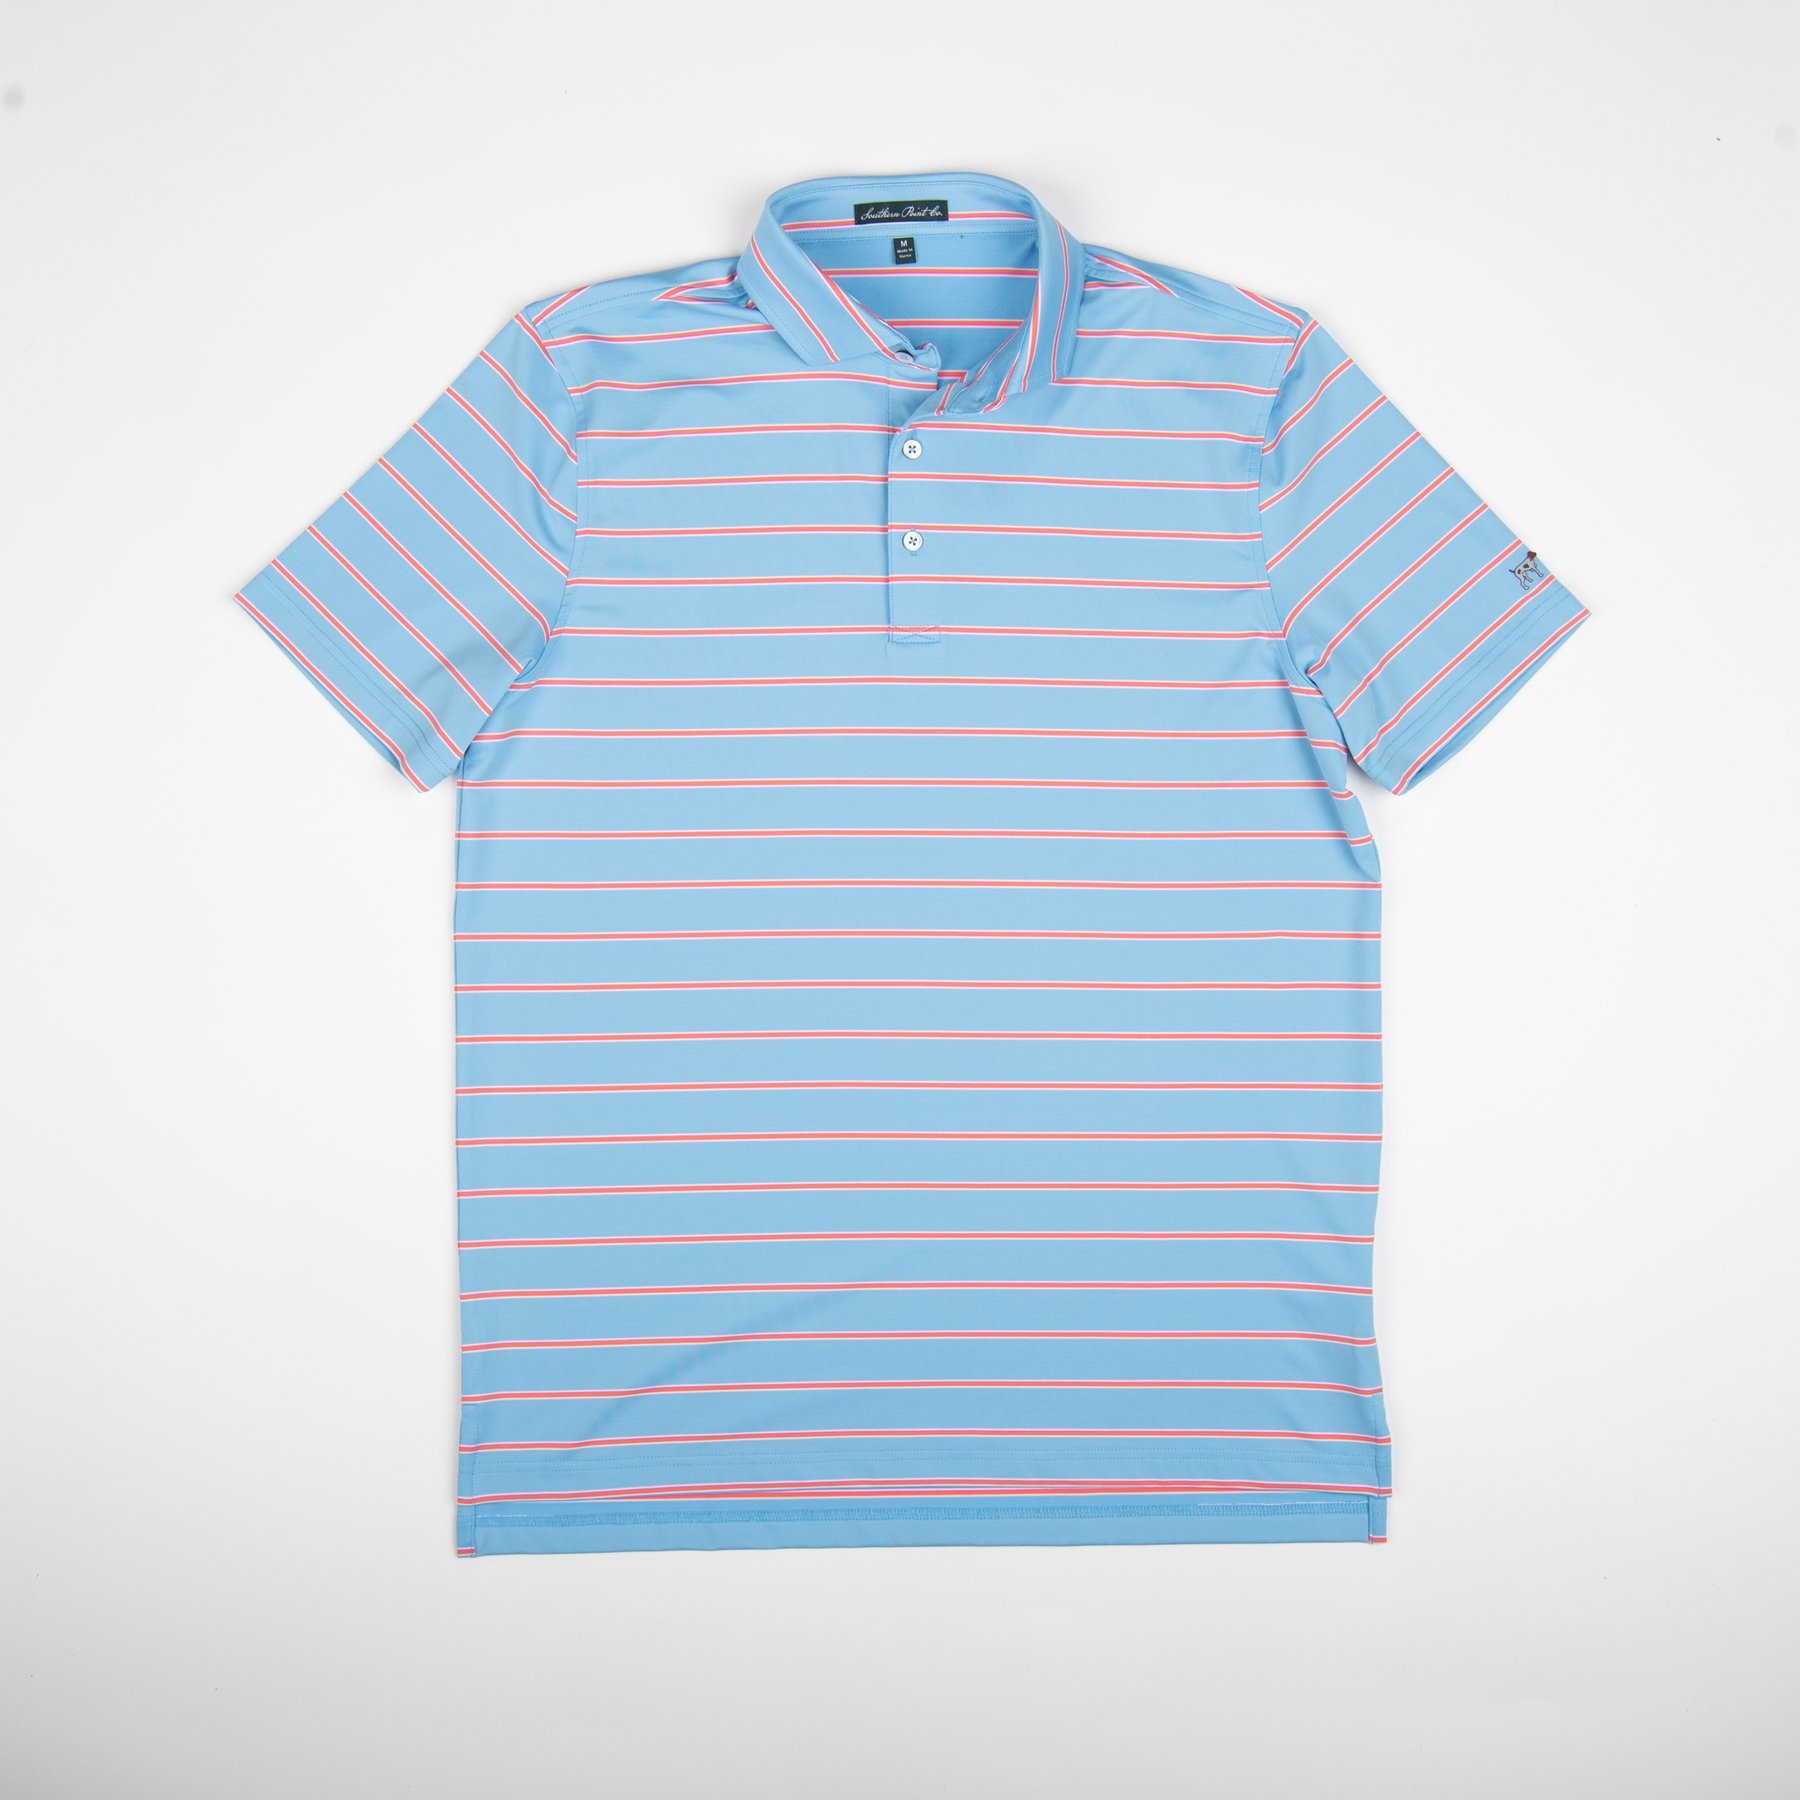 Southern Point Co. Performance Polo